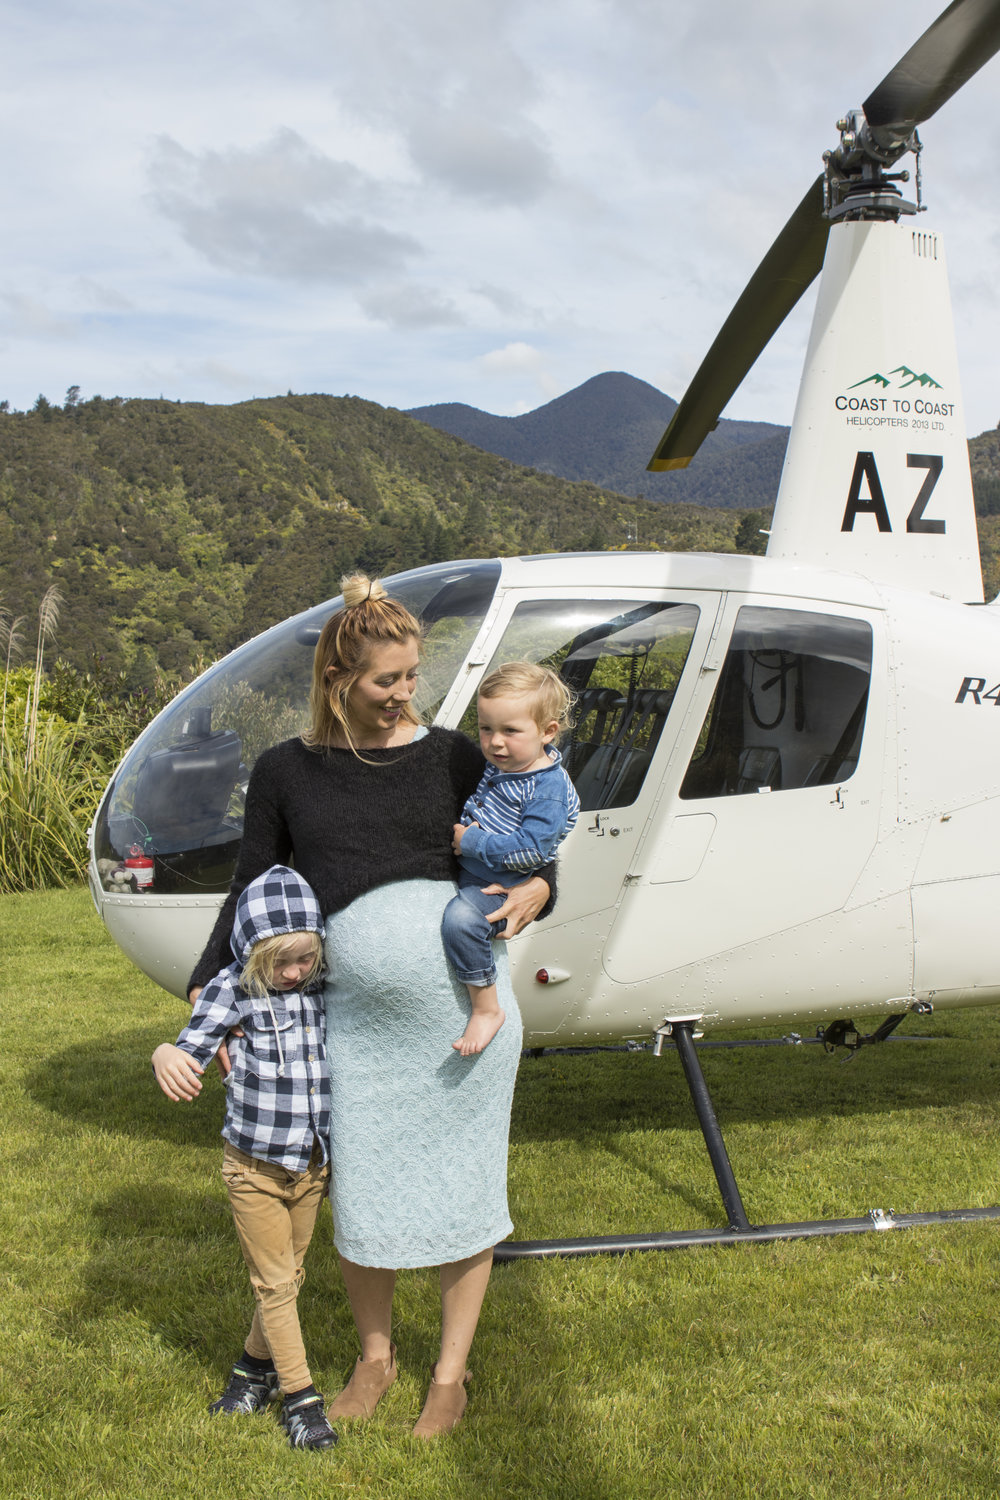 belandbeau_family adventure helicopter ride new zealand_9.jpg